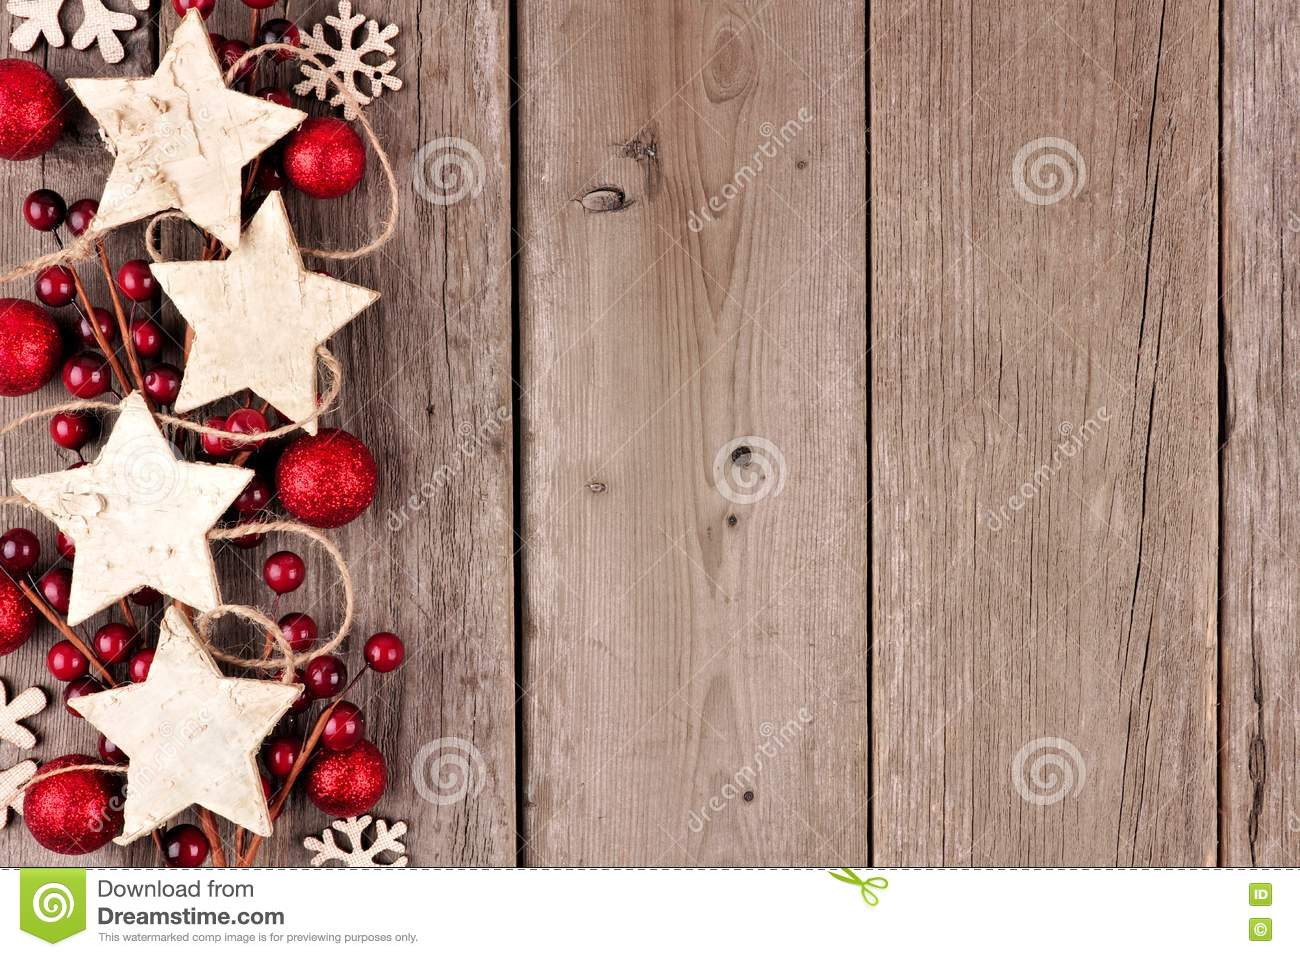 Download Christmas Side Border With Rustic Wood Star Ornaments And Baubles On Aged Wood Stock Photo - Image of celebration, nobody: 81046240